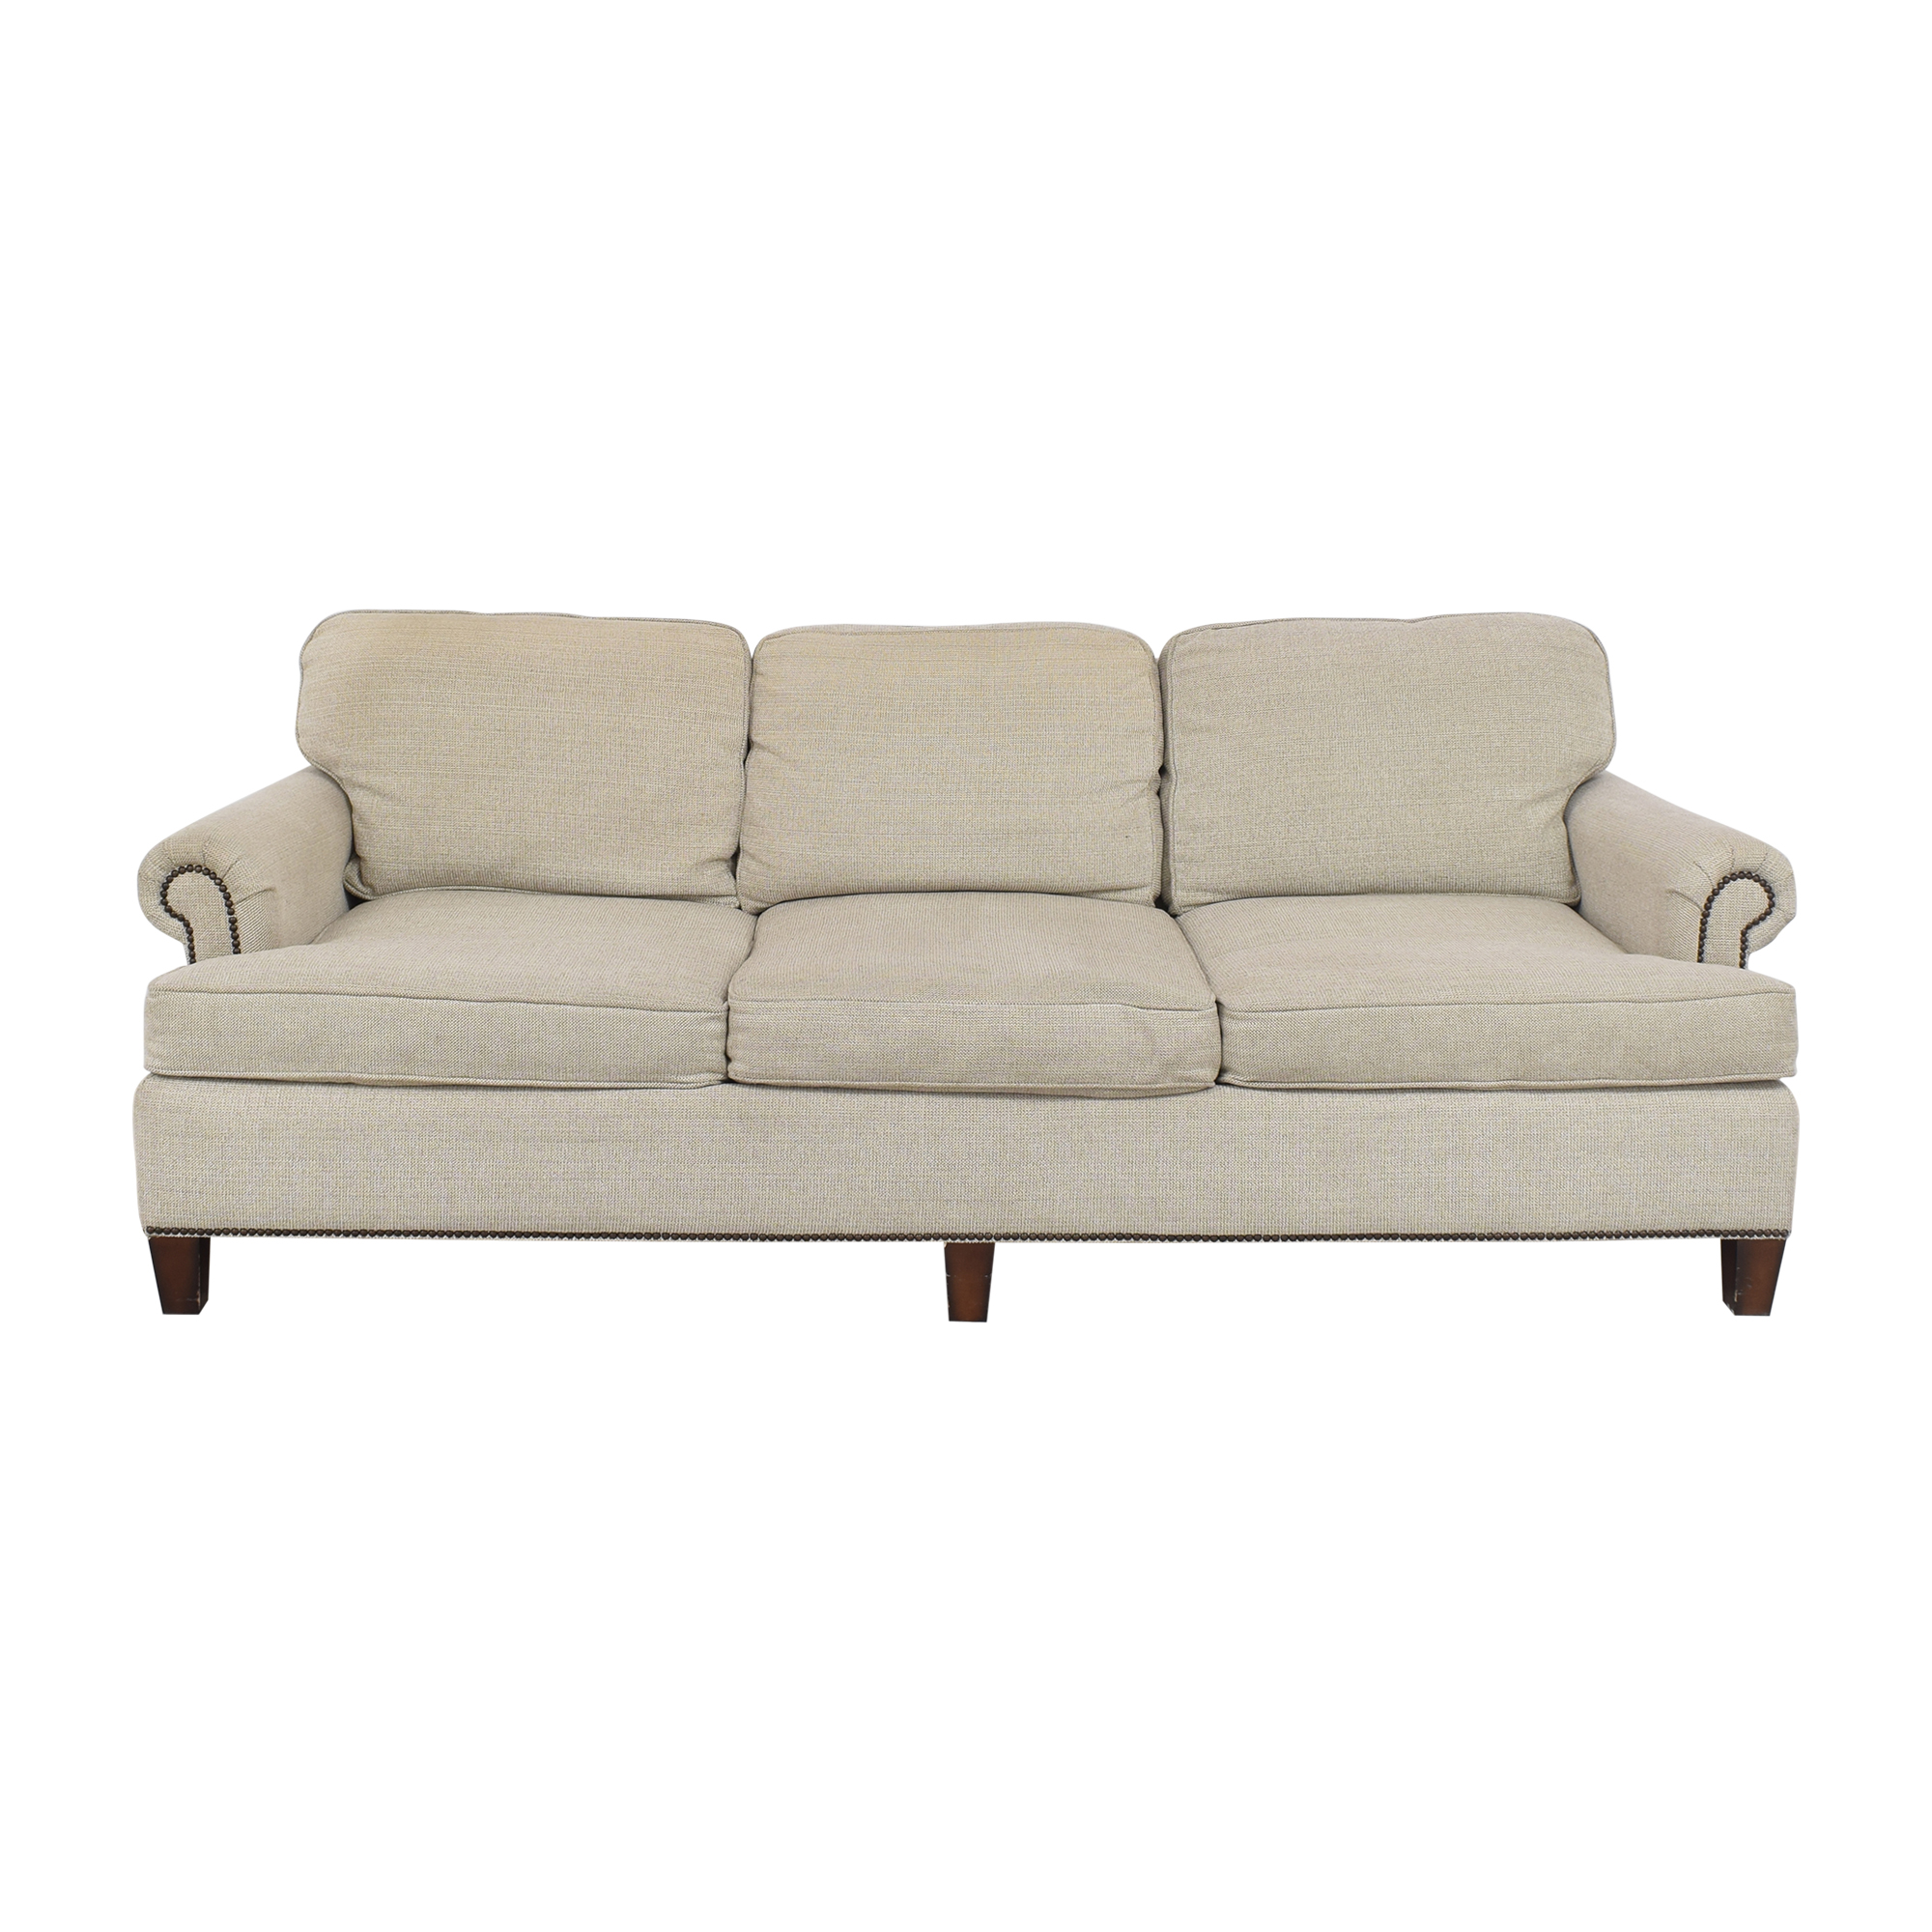 Bernhardt Bernhardt Roll Arm Nailhead Sofa for sale